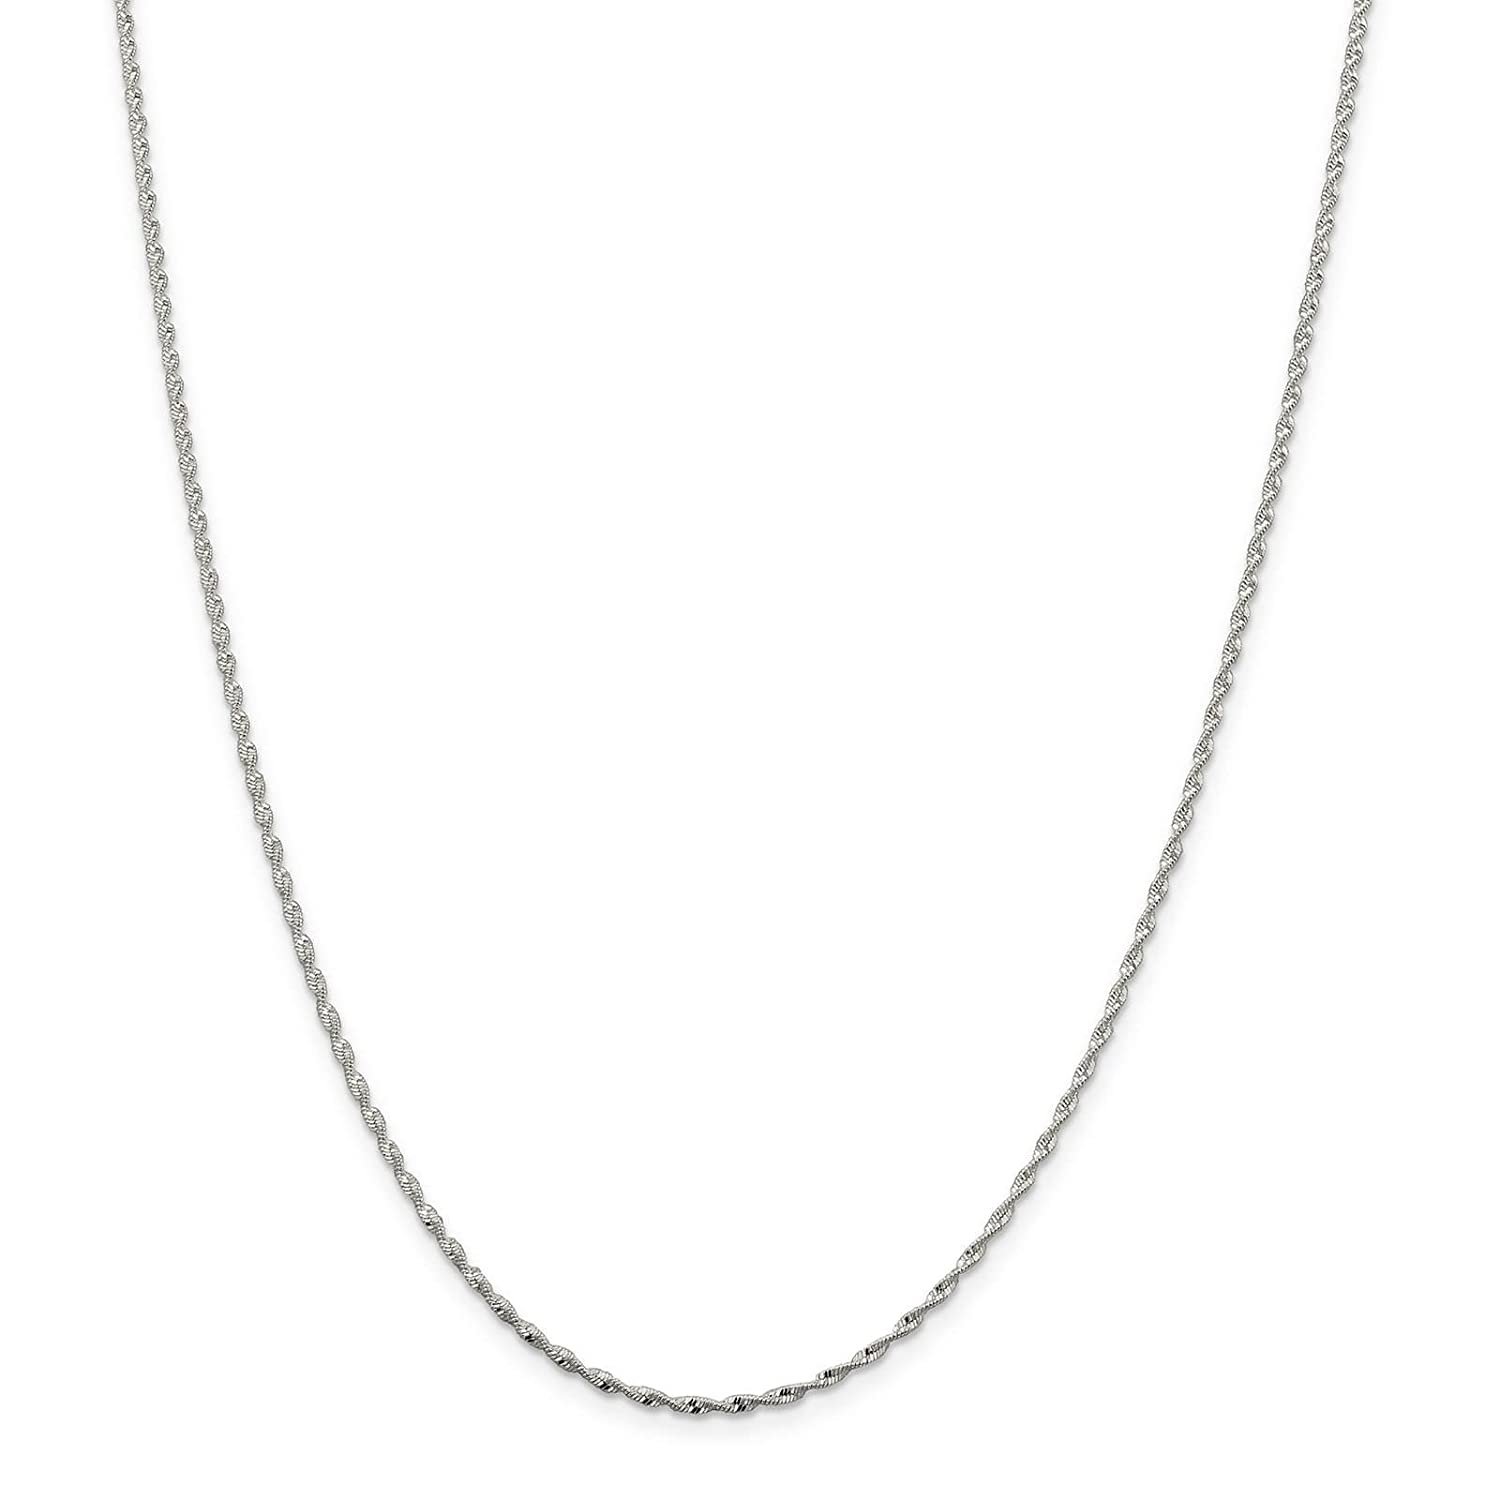 925 Sterling Silver 1.6mm Twisted Herringbone Chain Necklace 7-24